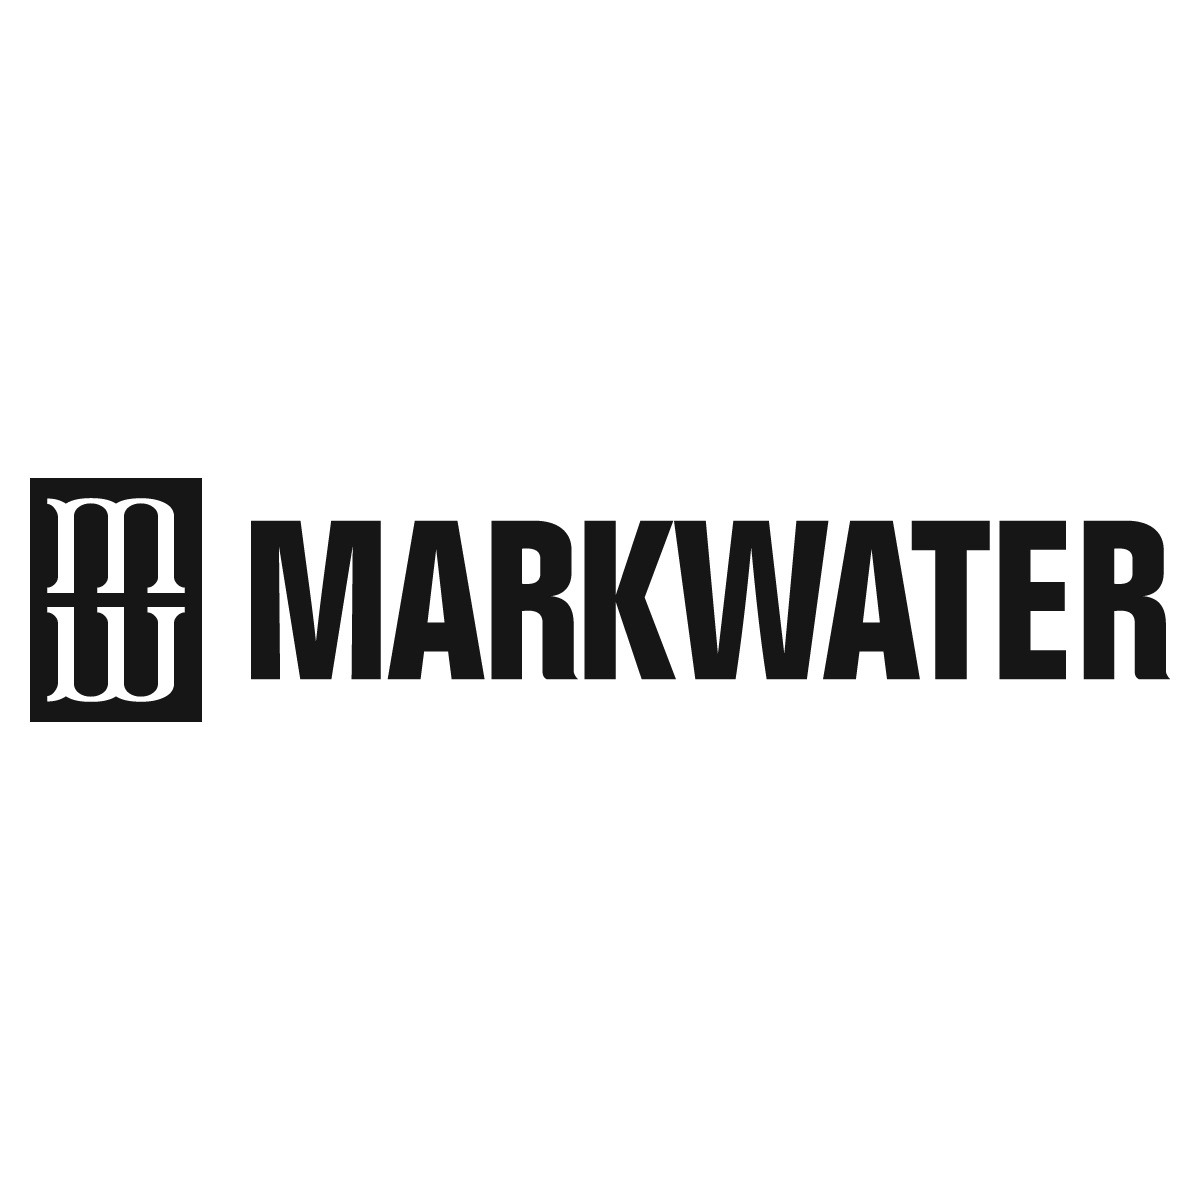 MarkWater (Off Shore O&G Services)